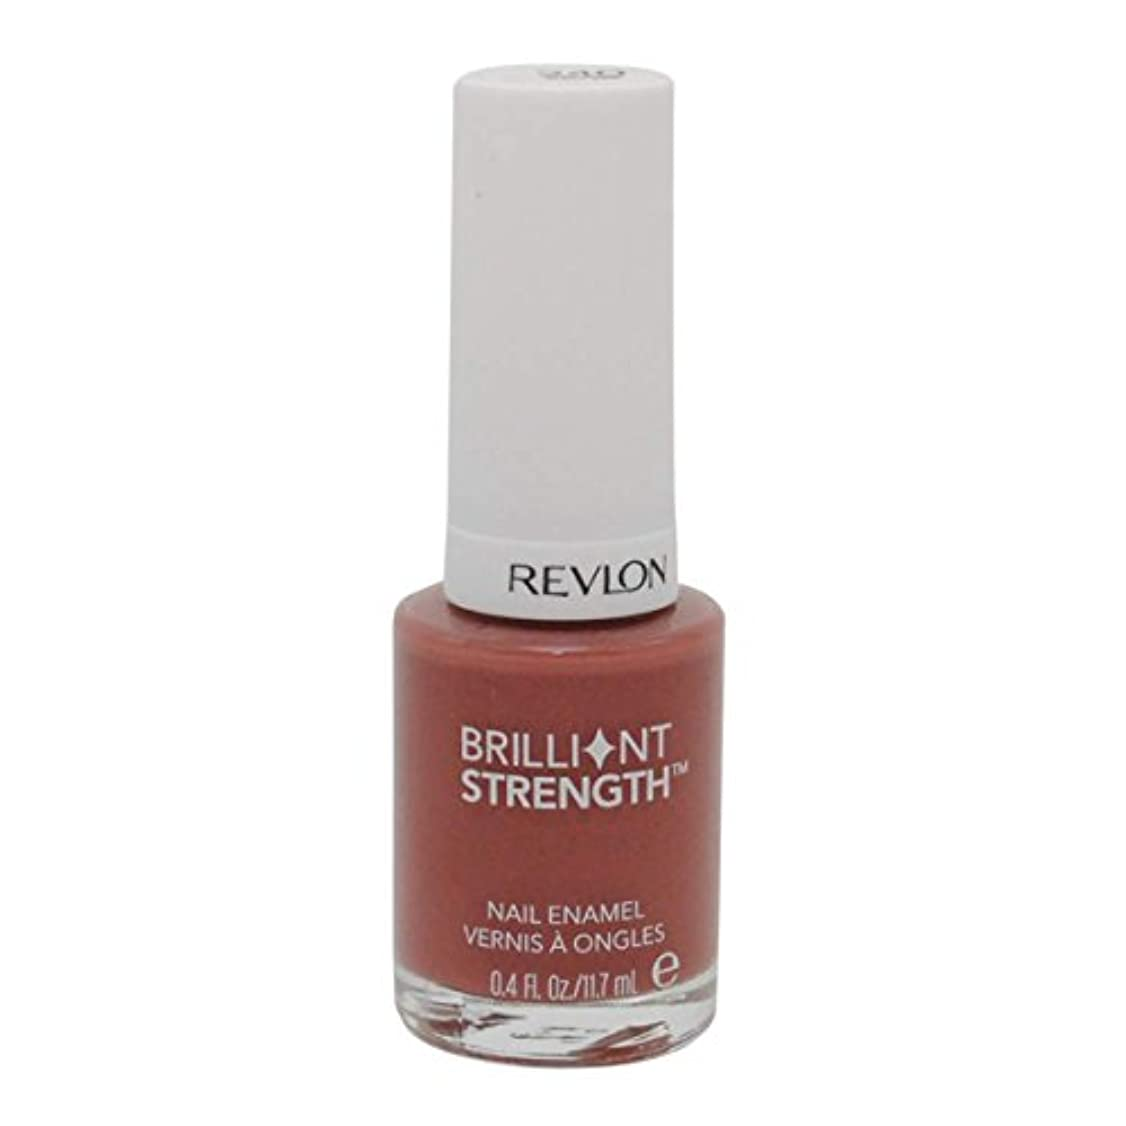 REVLON BRILLIANT STRENGTH NAIL ENAMEL #240 INSPIRE